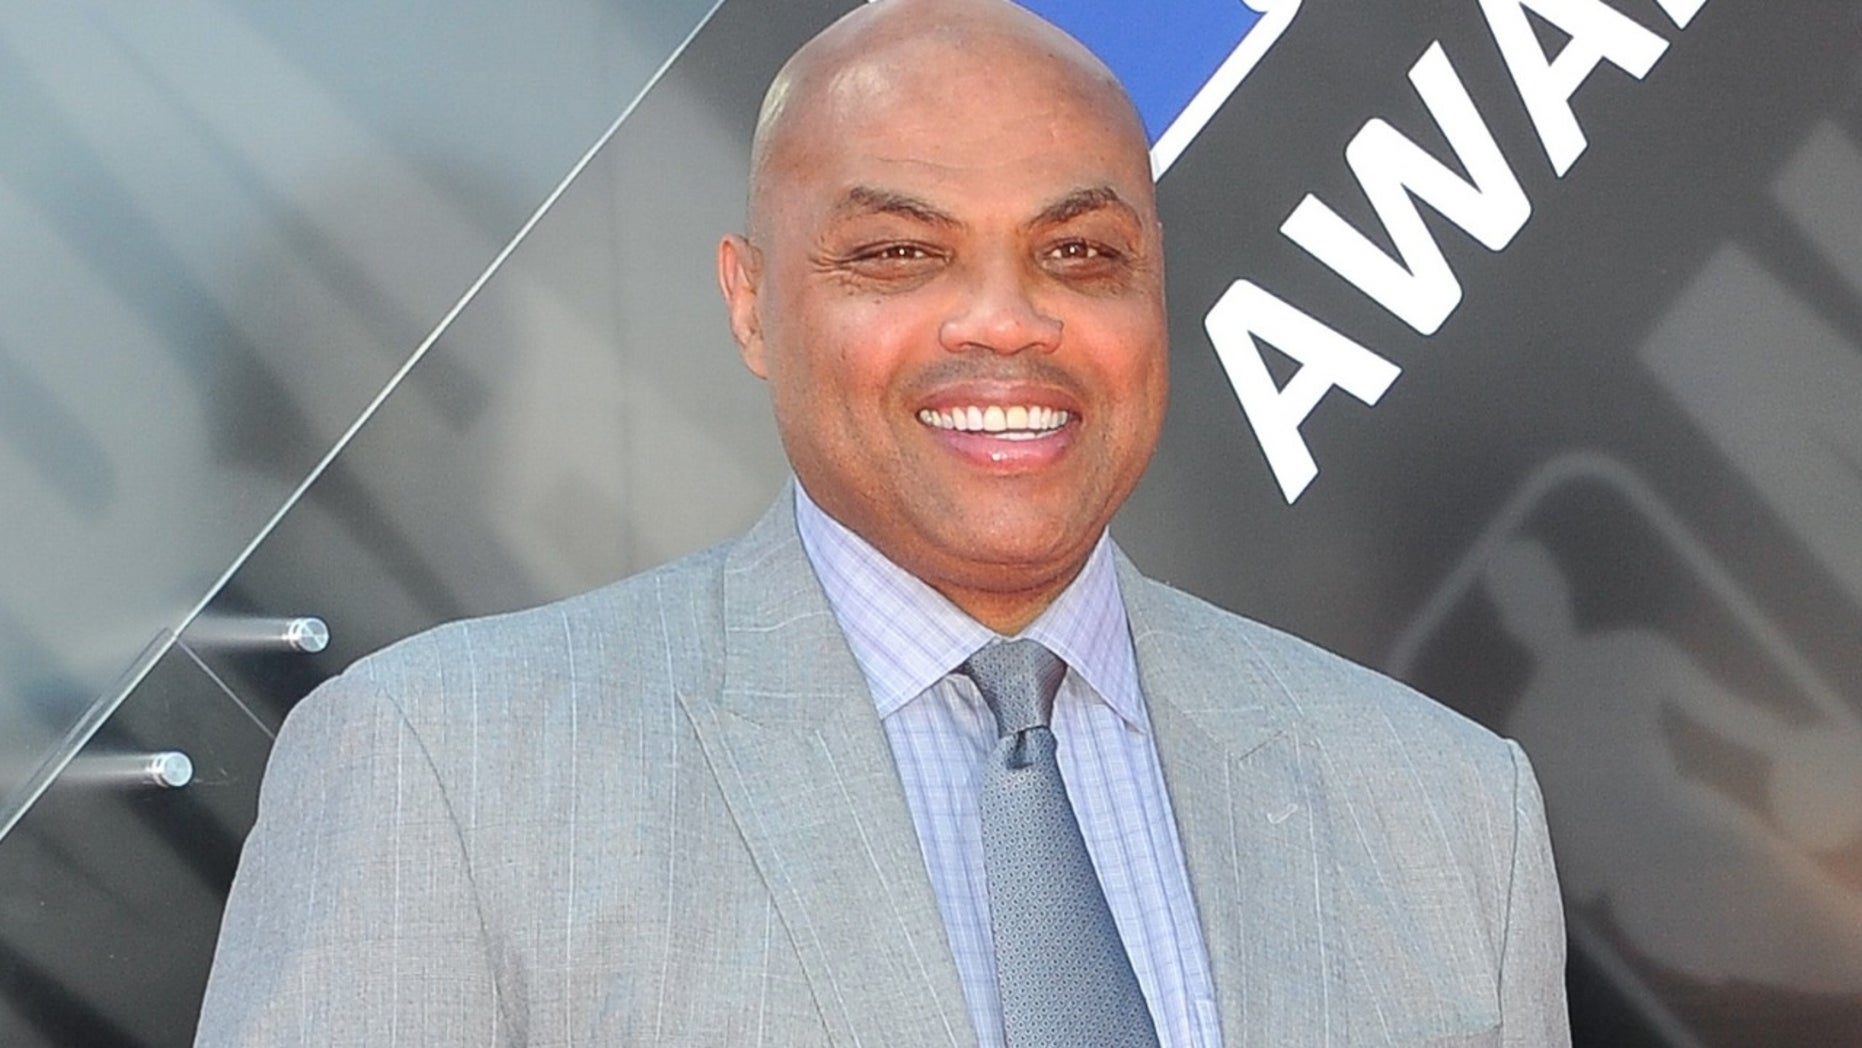 Charles Barkley's incredible, unique friendship with an Iowa cat litter scientist